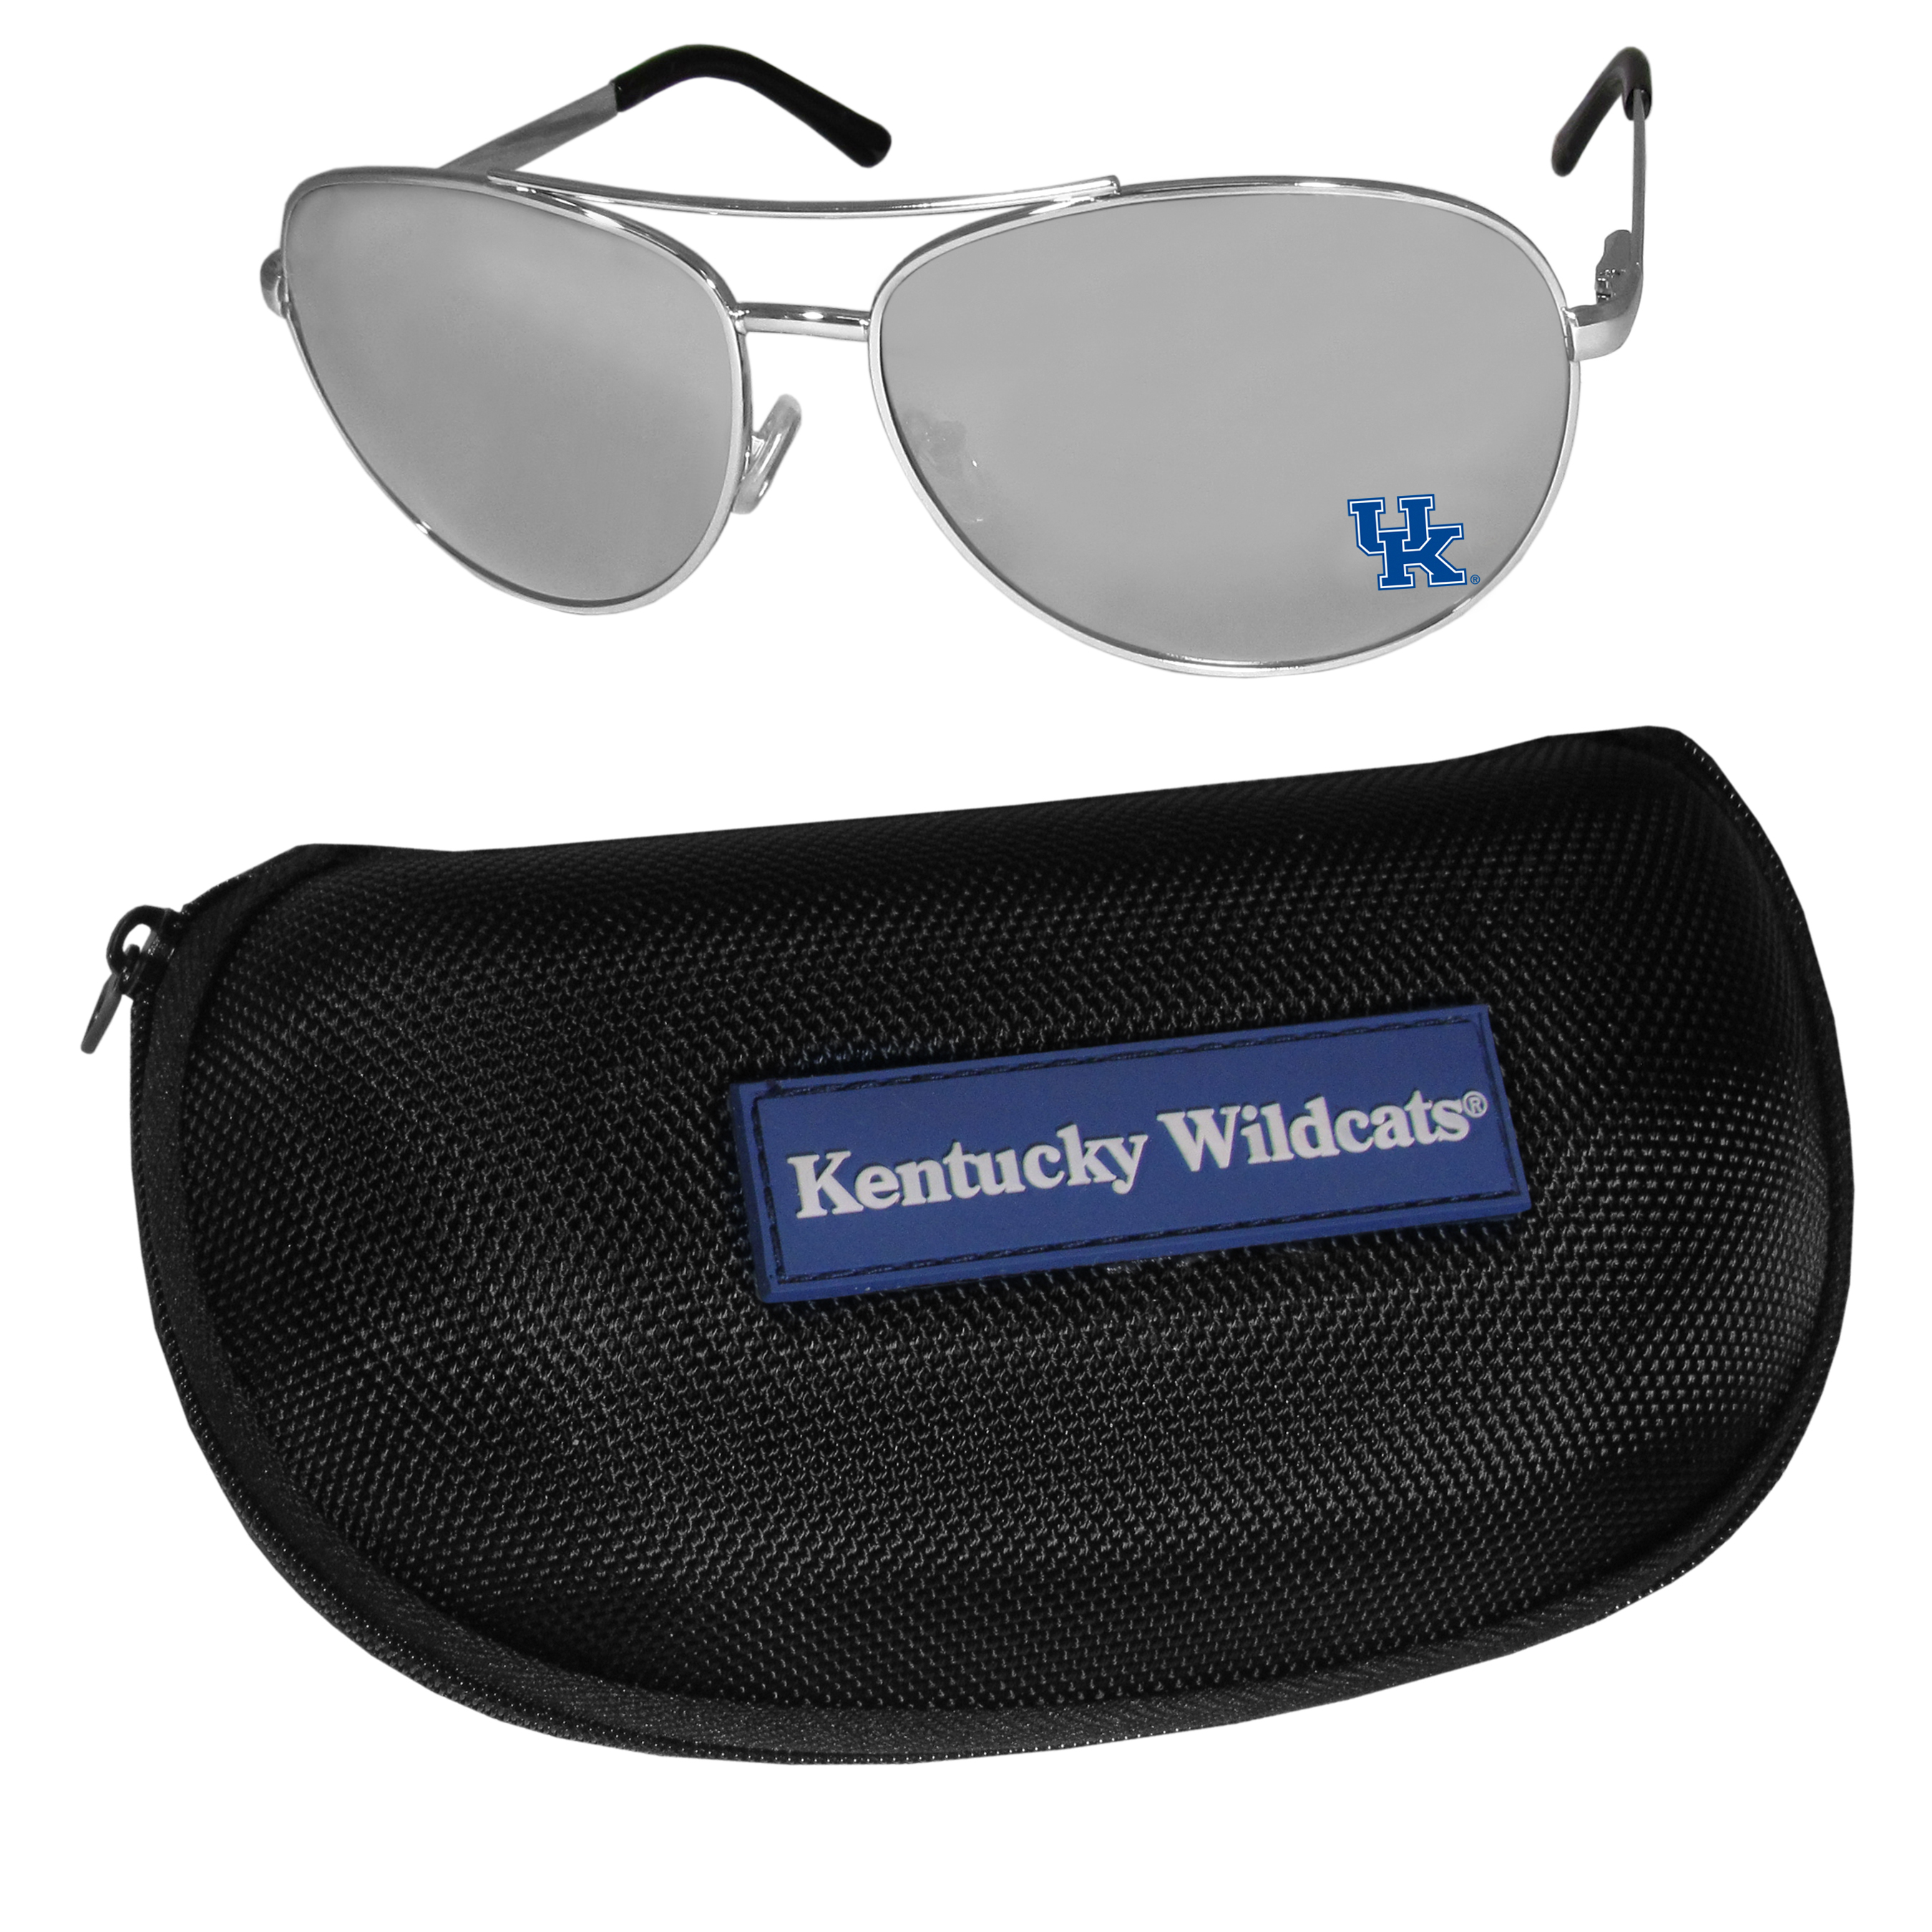 Kentucky Wildcats Aviator Sunglasses and Zippered Carrying Case - Aviator sunglasses are truly an iconic retro fashion statement that never goes out-of-style. Our Kentucky Wildcats  aviator sunglasses pair this classic look with your love of the game. The iridium coated lenses reduce glare while driving, boating, golfing and their 100% UVA/UVB rating provides you with the maximum UV protection for all your outdoor activities. A millennial favorite, these affordable designer frames are the perfect eyewear accessory for a sports fan that is looking for high-quality at an affordable price. The durable, flex hinged frames are tough enough for hiking and camping or if you prefer sun bathing by the pool or on the beach these shades will really stand the test of time. The sunglasses come with a hard shell zippered case which has a large team logo on the lid that will make even the most die-hard fan proud!